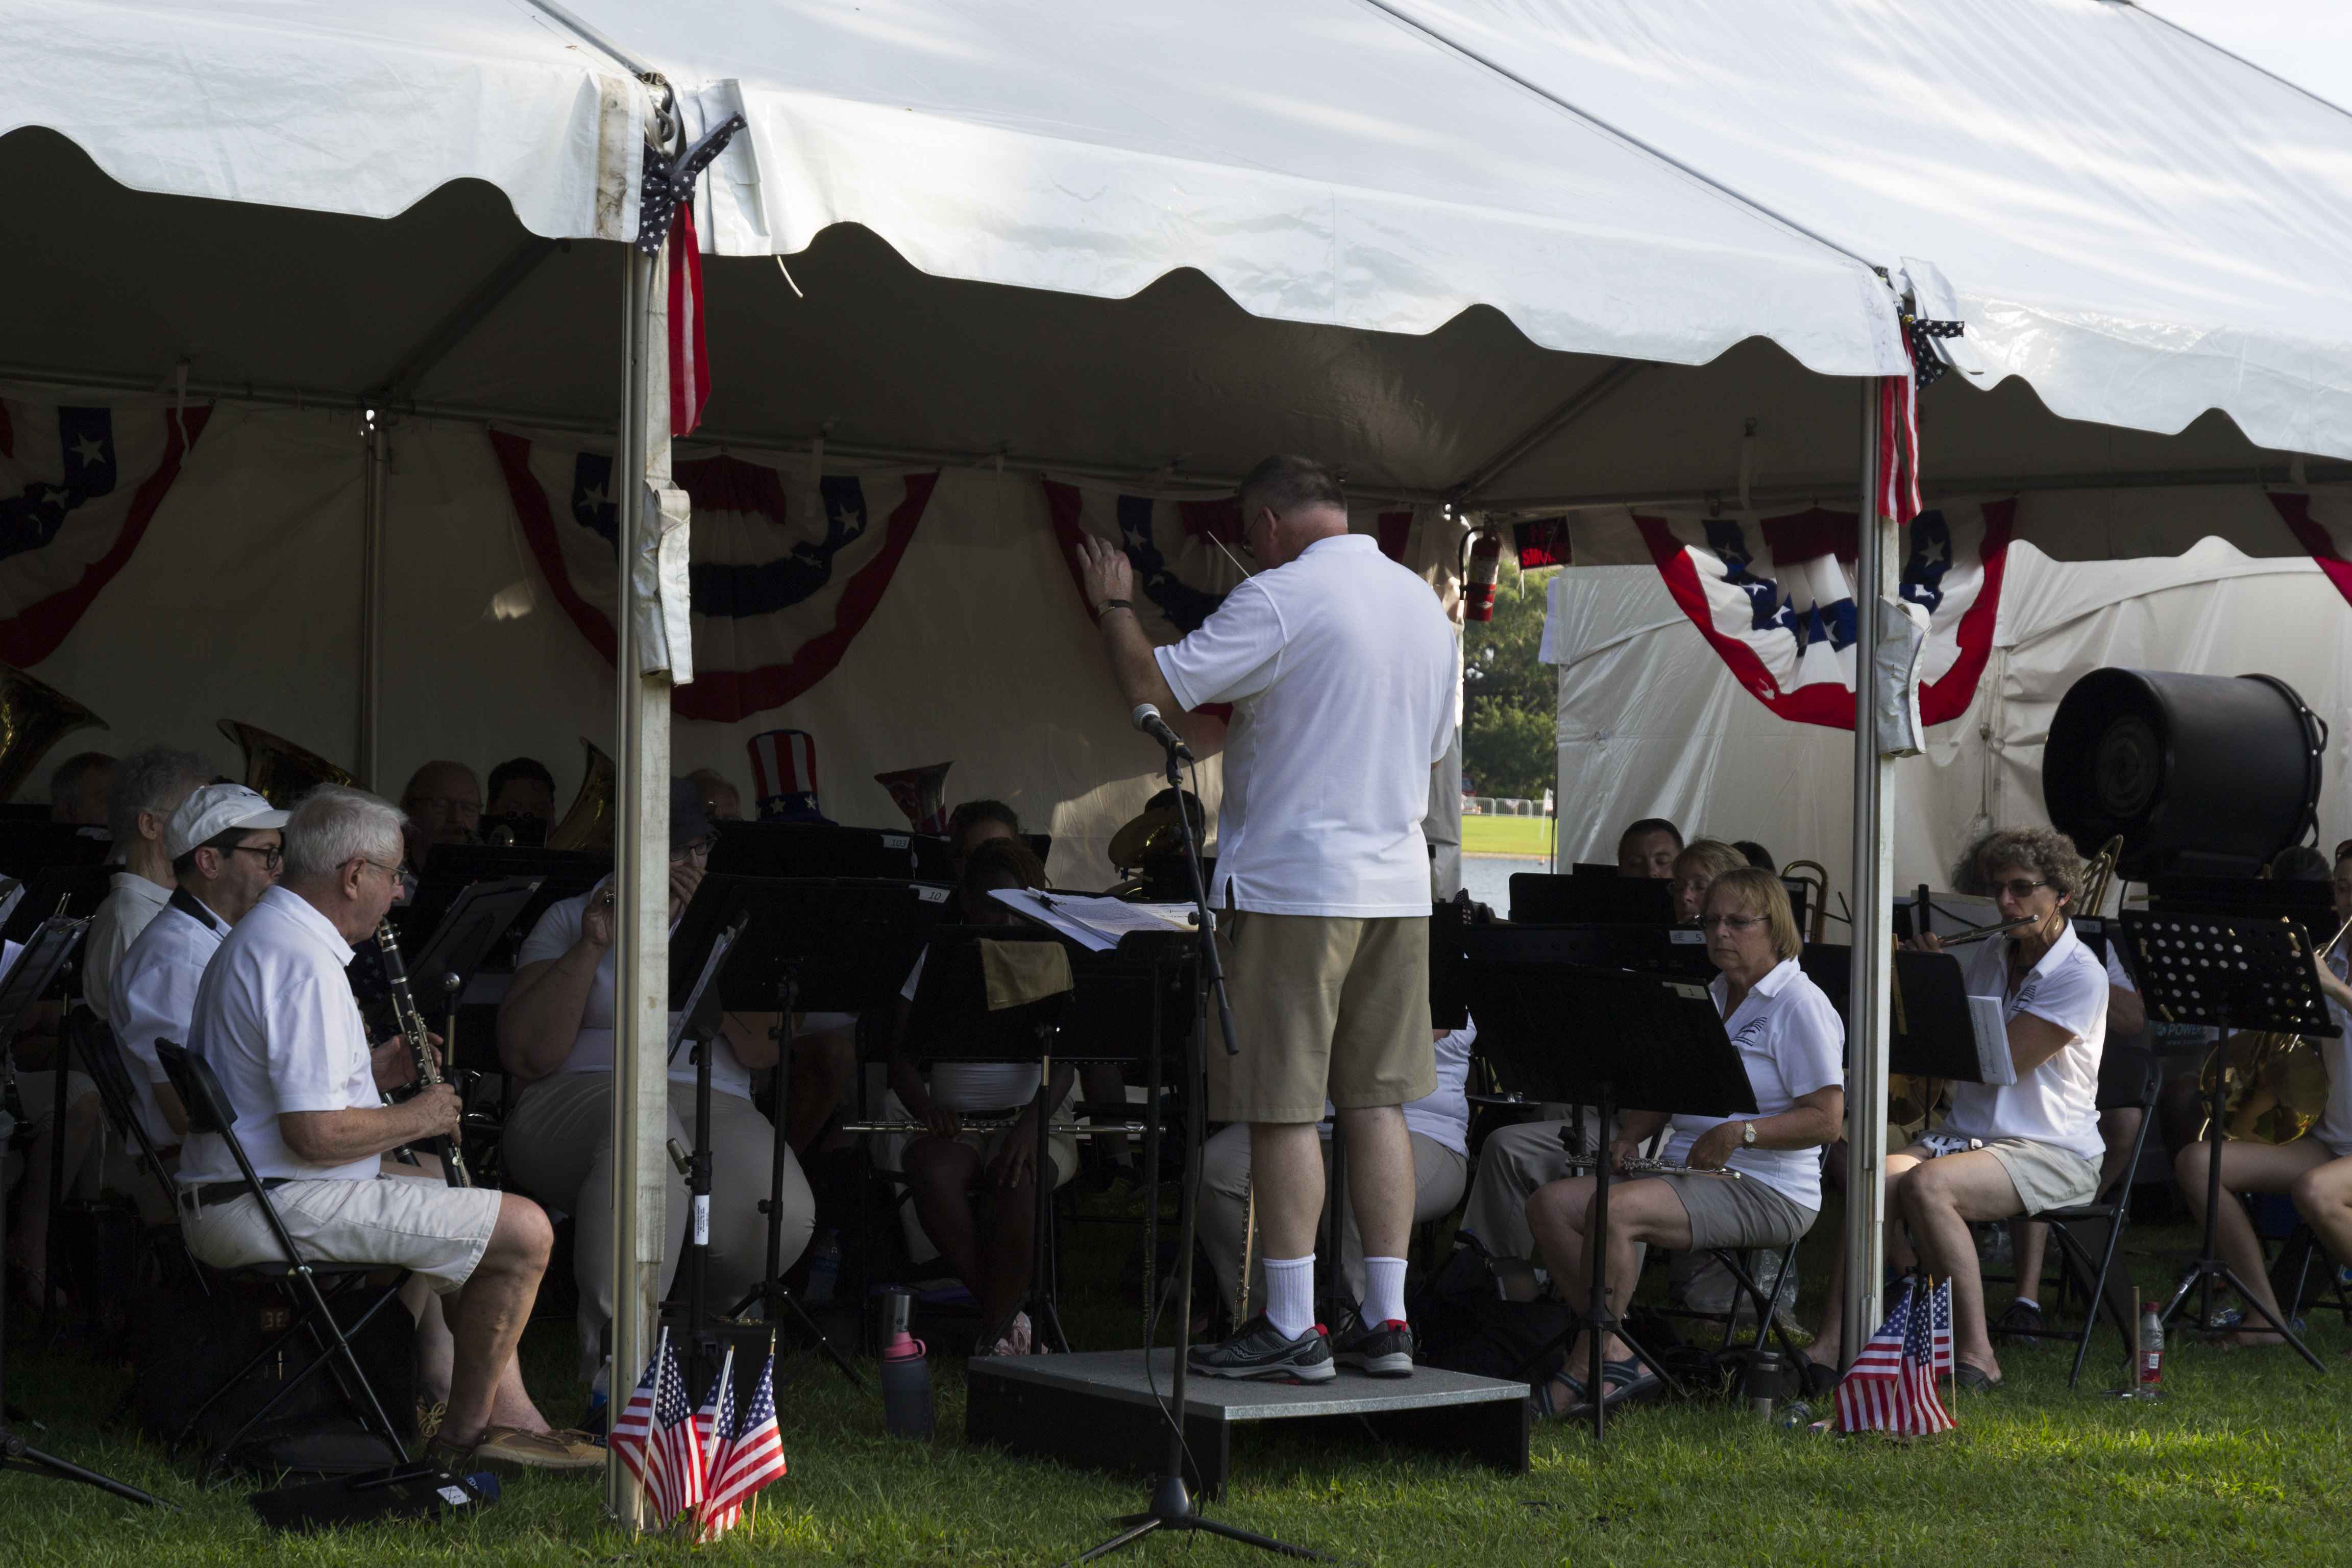 Two bands provided back to back lakeside concerts on July 3.